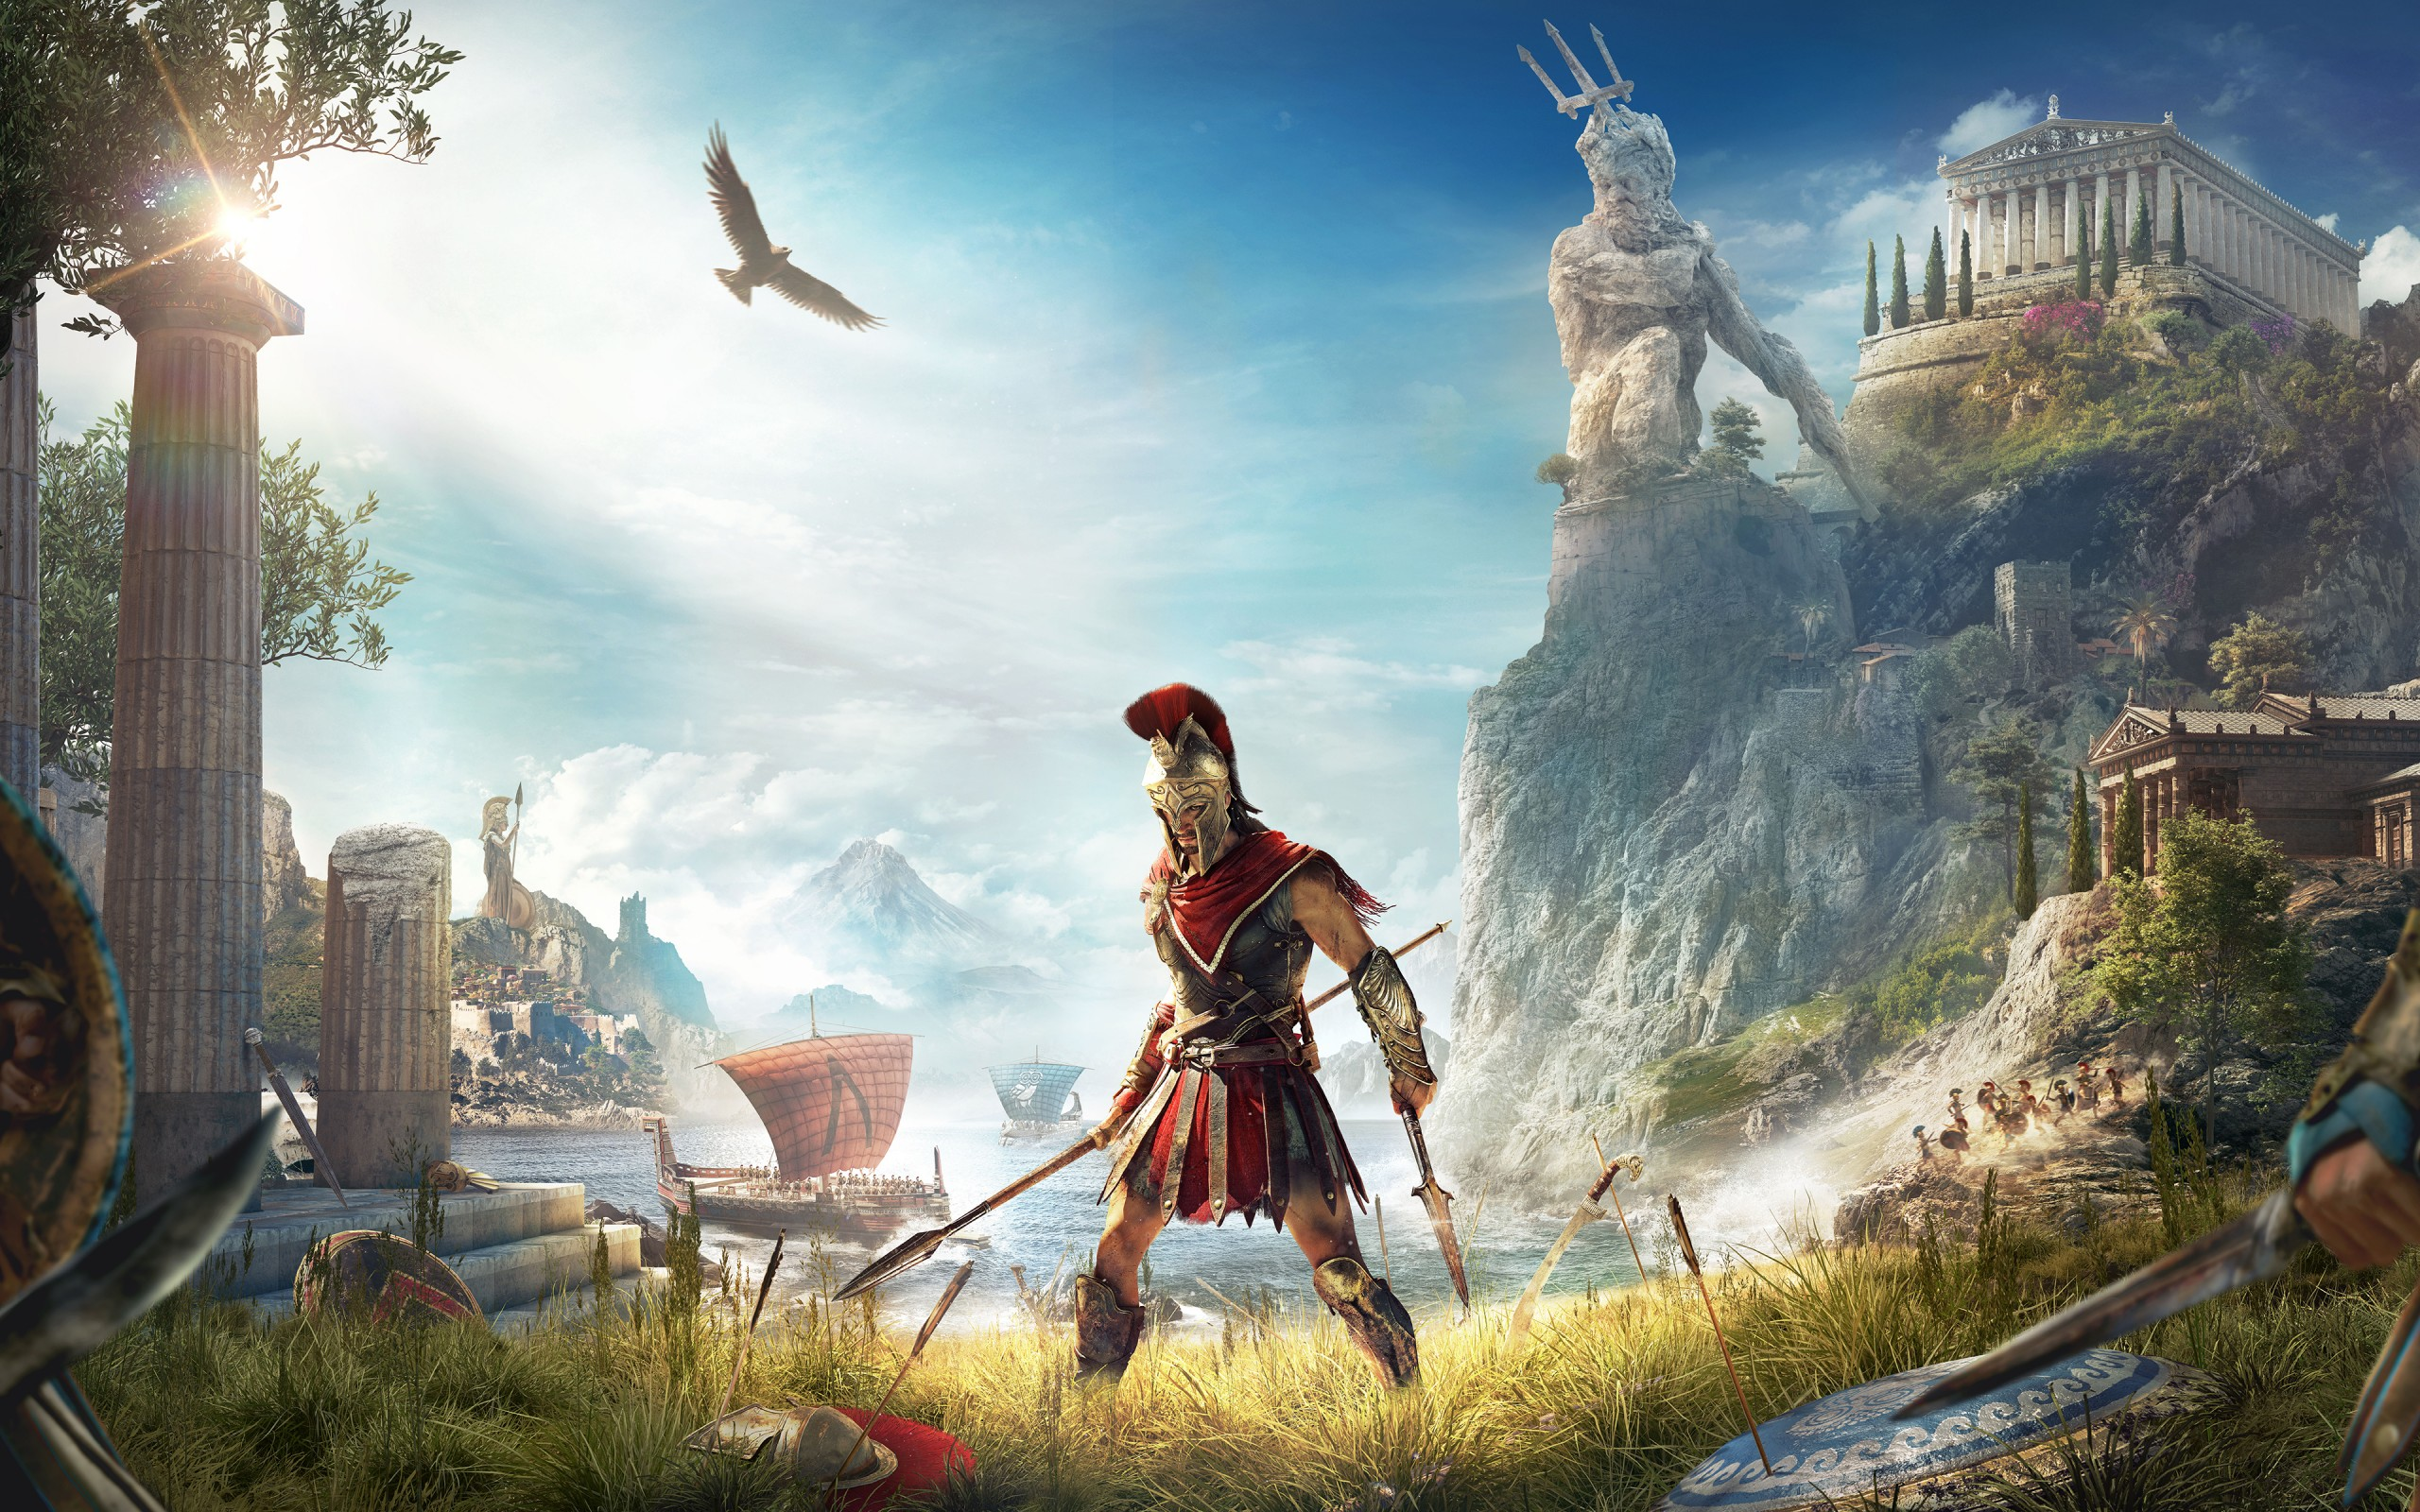 Wallpaper Apple Iphone 6 Assassin S Creed Odyssey 4k 8k Wallpapers Hd Wallpapers